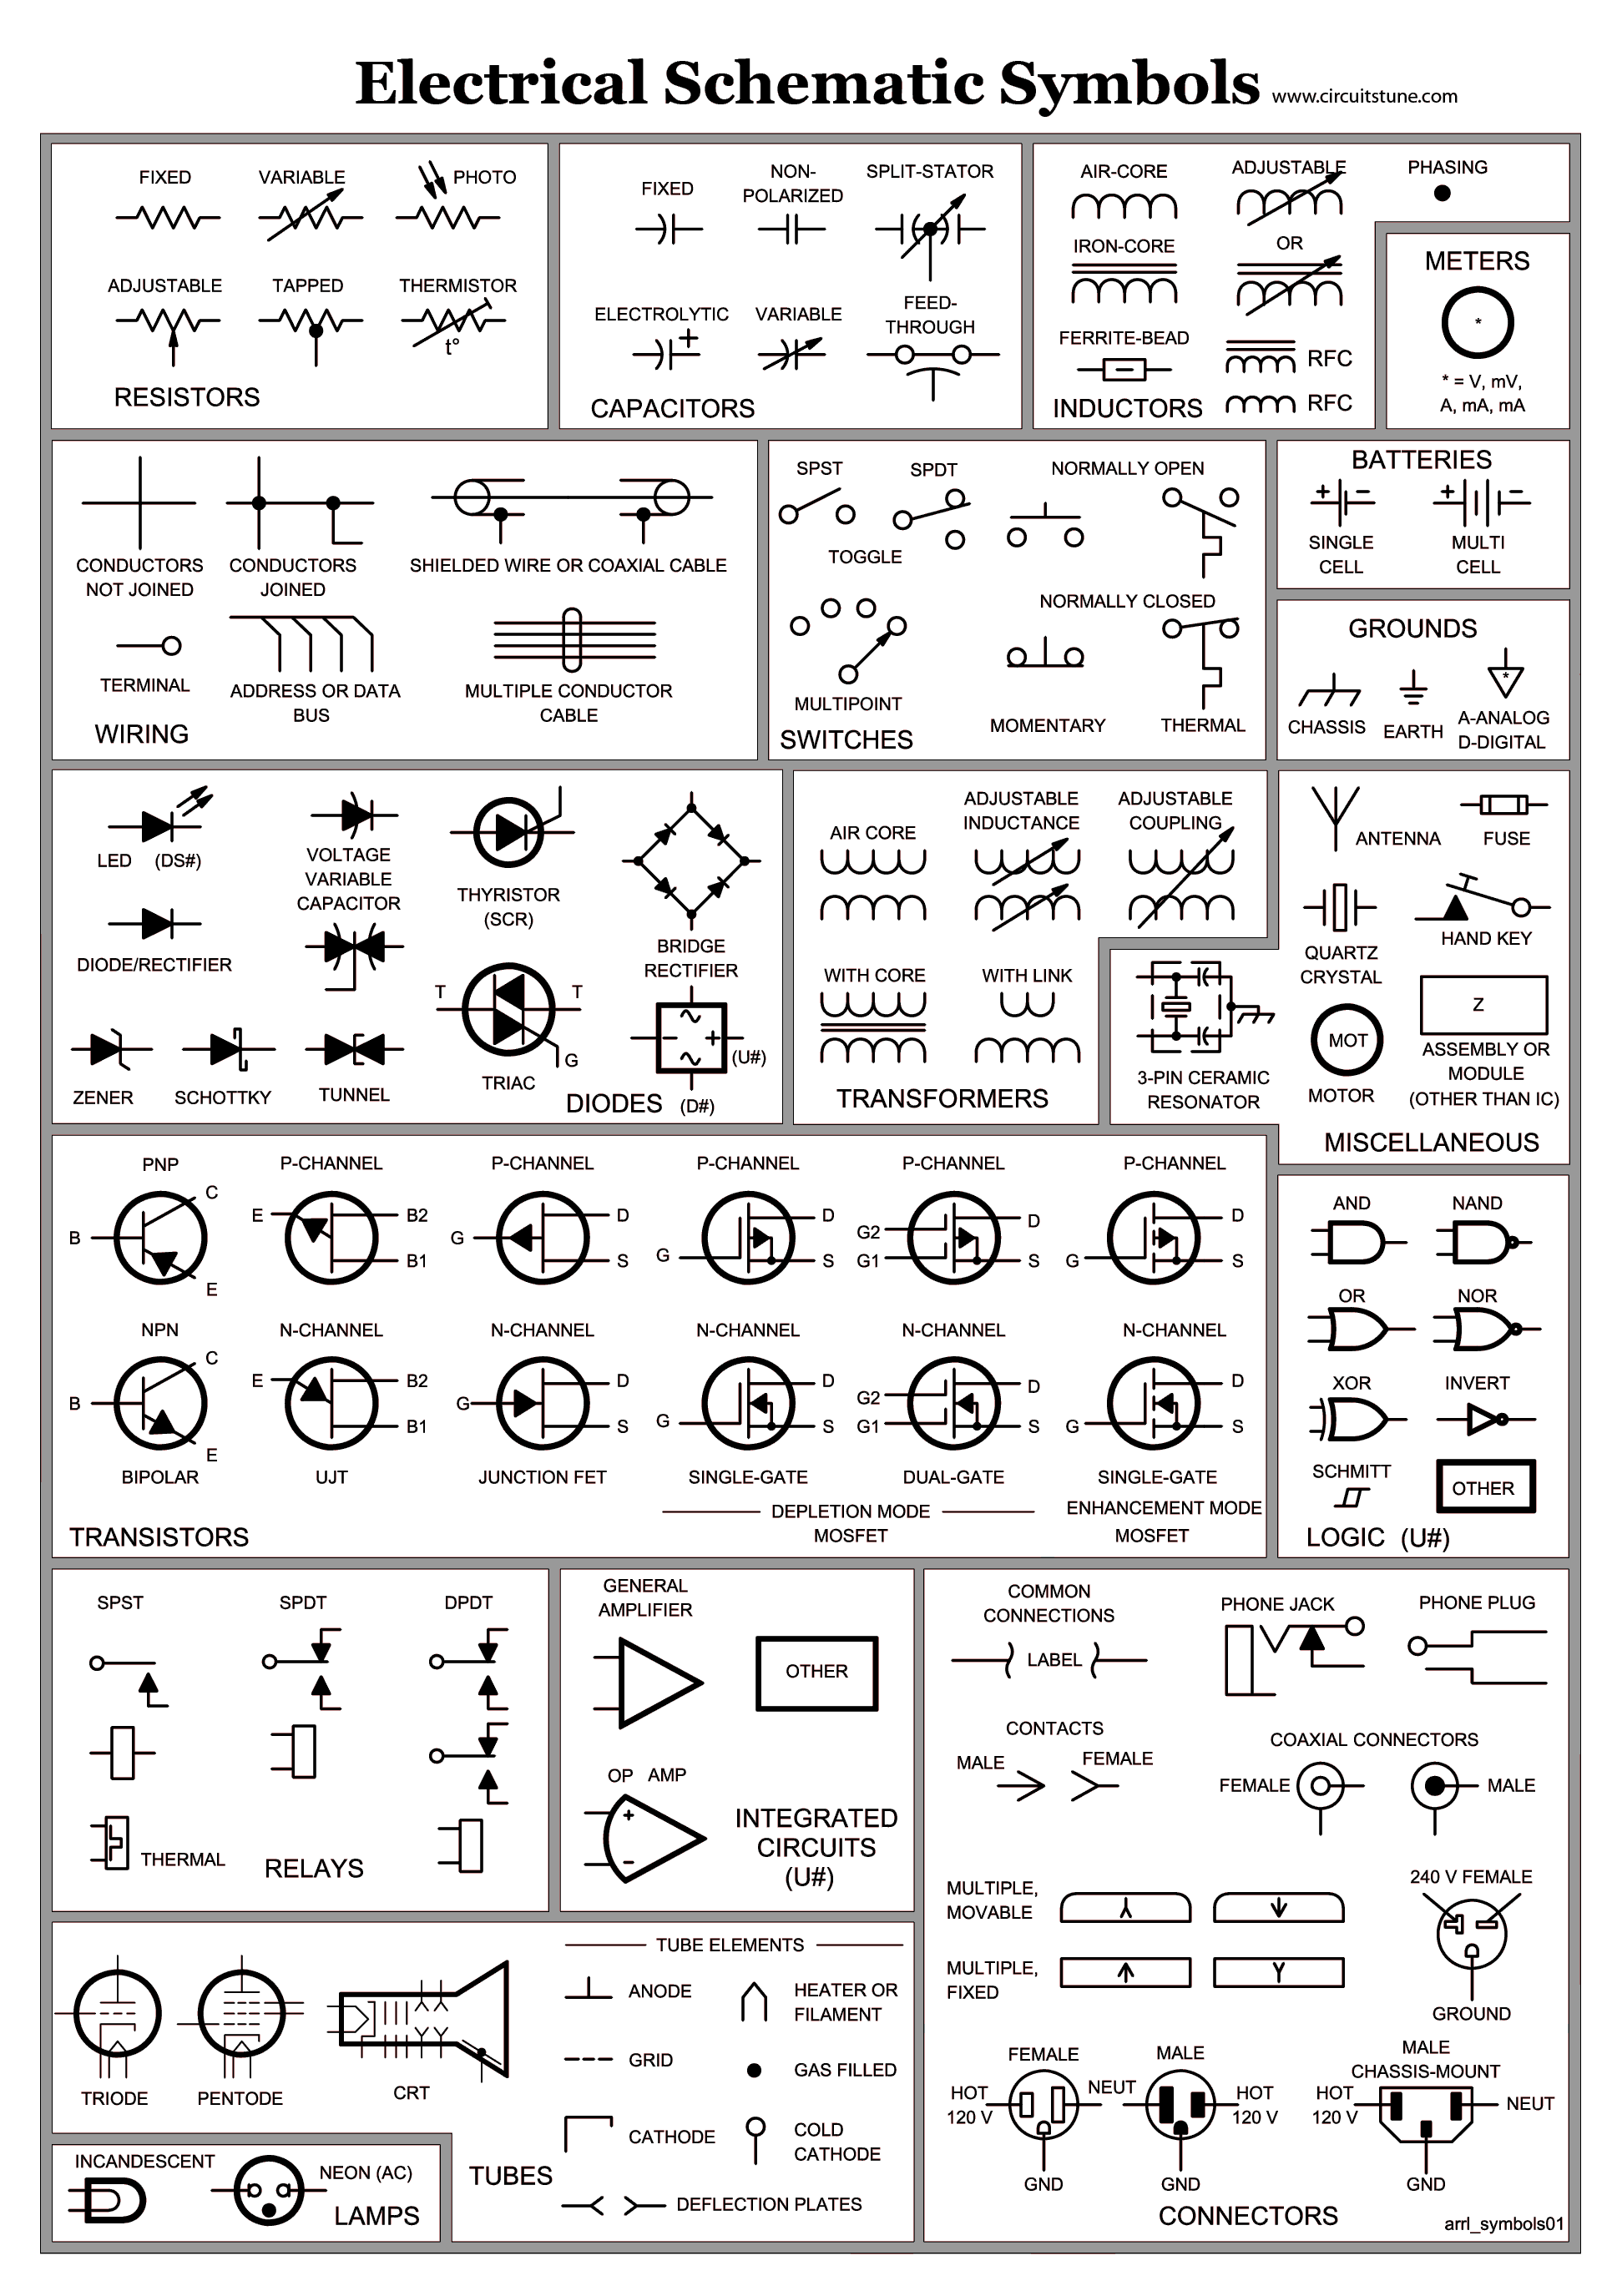 electrical schematic symbols wire diagram symbols automotive wiring rh pinterest com motor control diagram symbols control logic diagram symbols